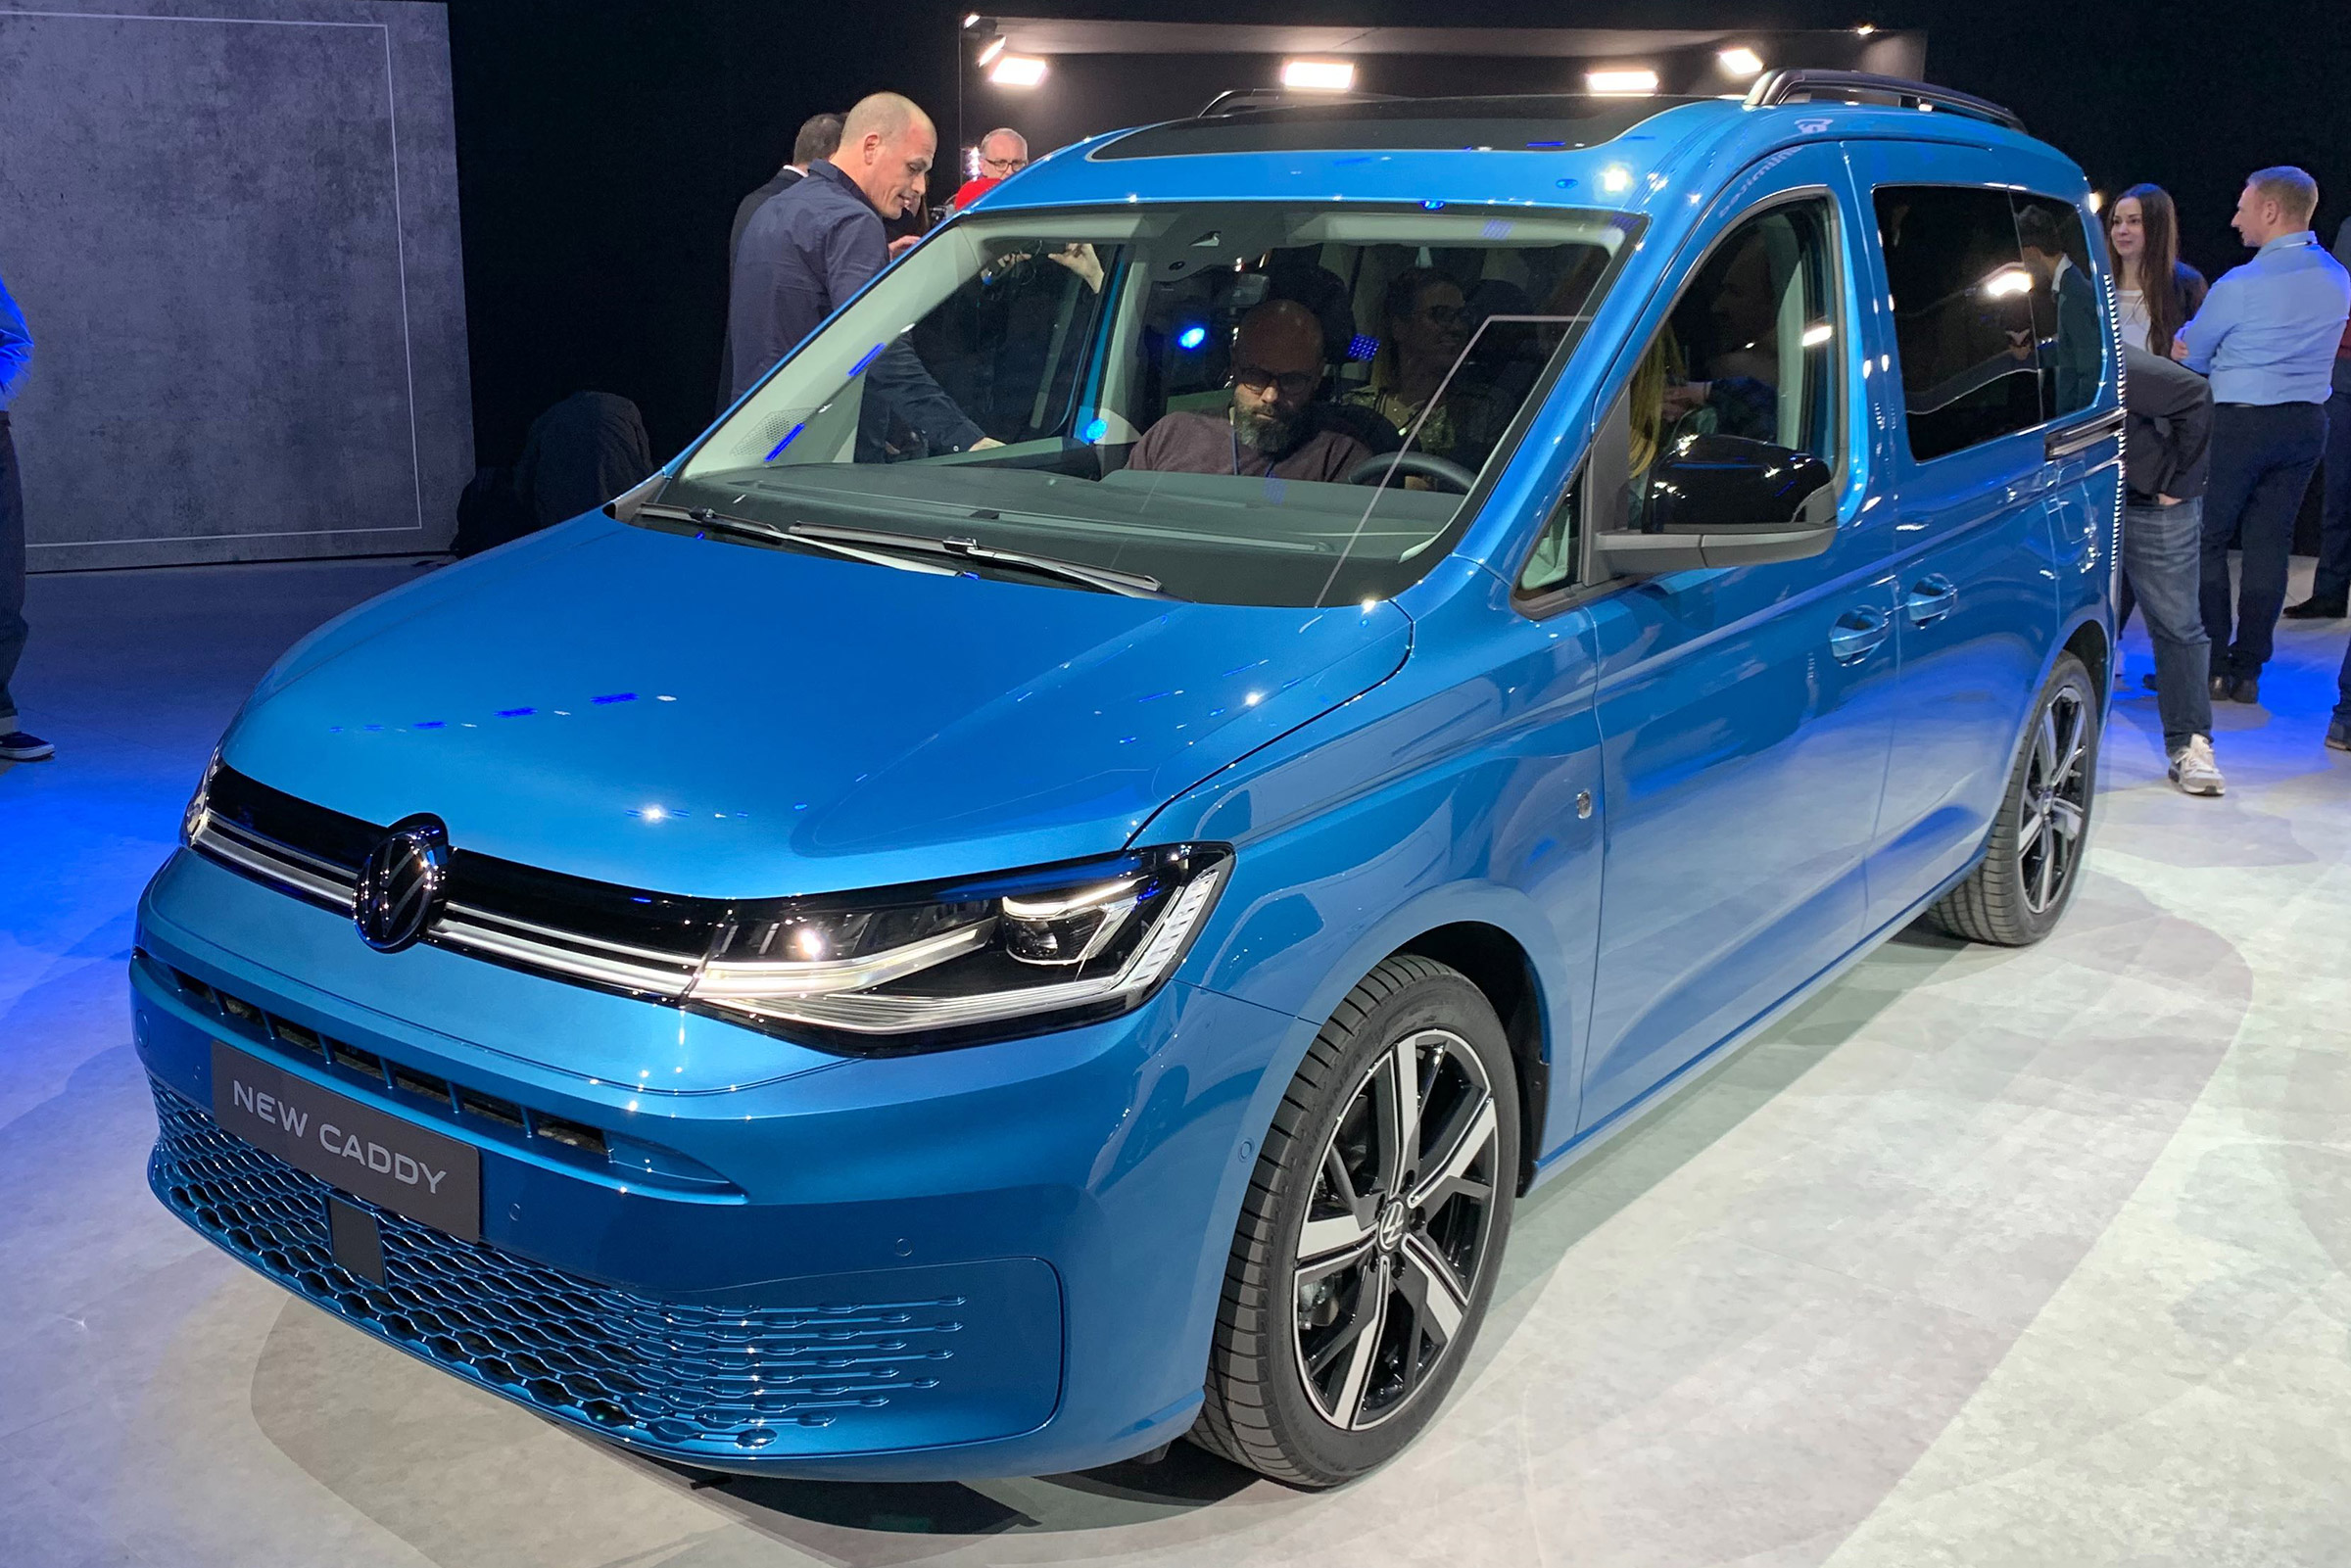 2020 Volkswagen Caddy Mpv Prices Specs And Release Date Carbuyer